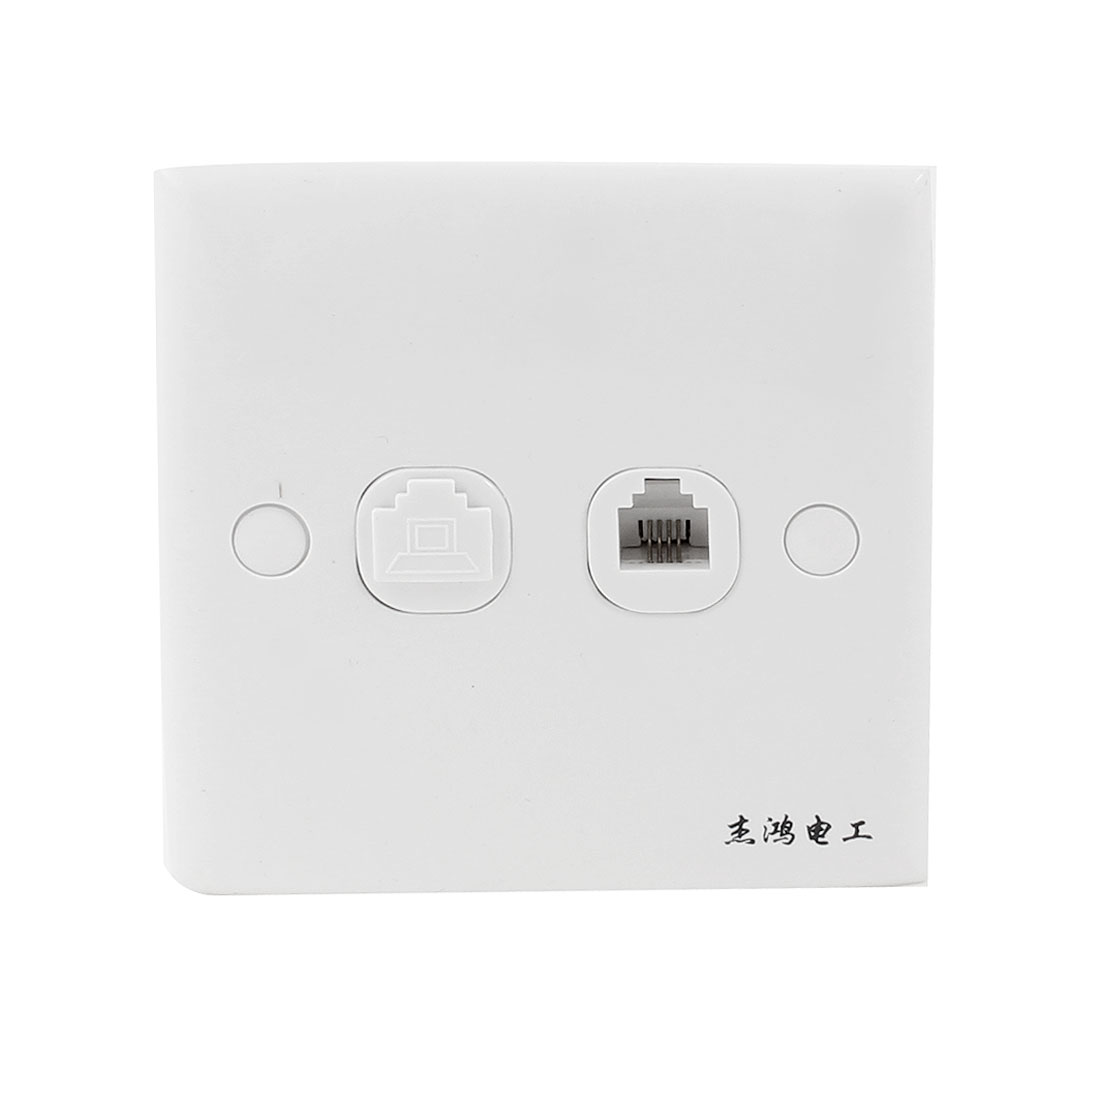 White Square RJ45 8P8C Computer RJ11 4P4C Telephone Outlet Socket Wall Panel